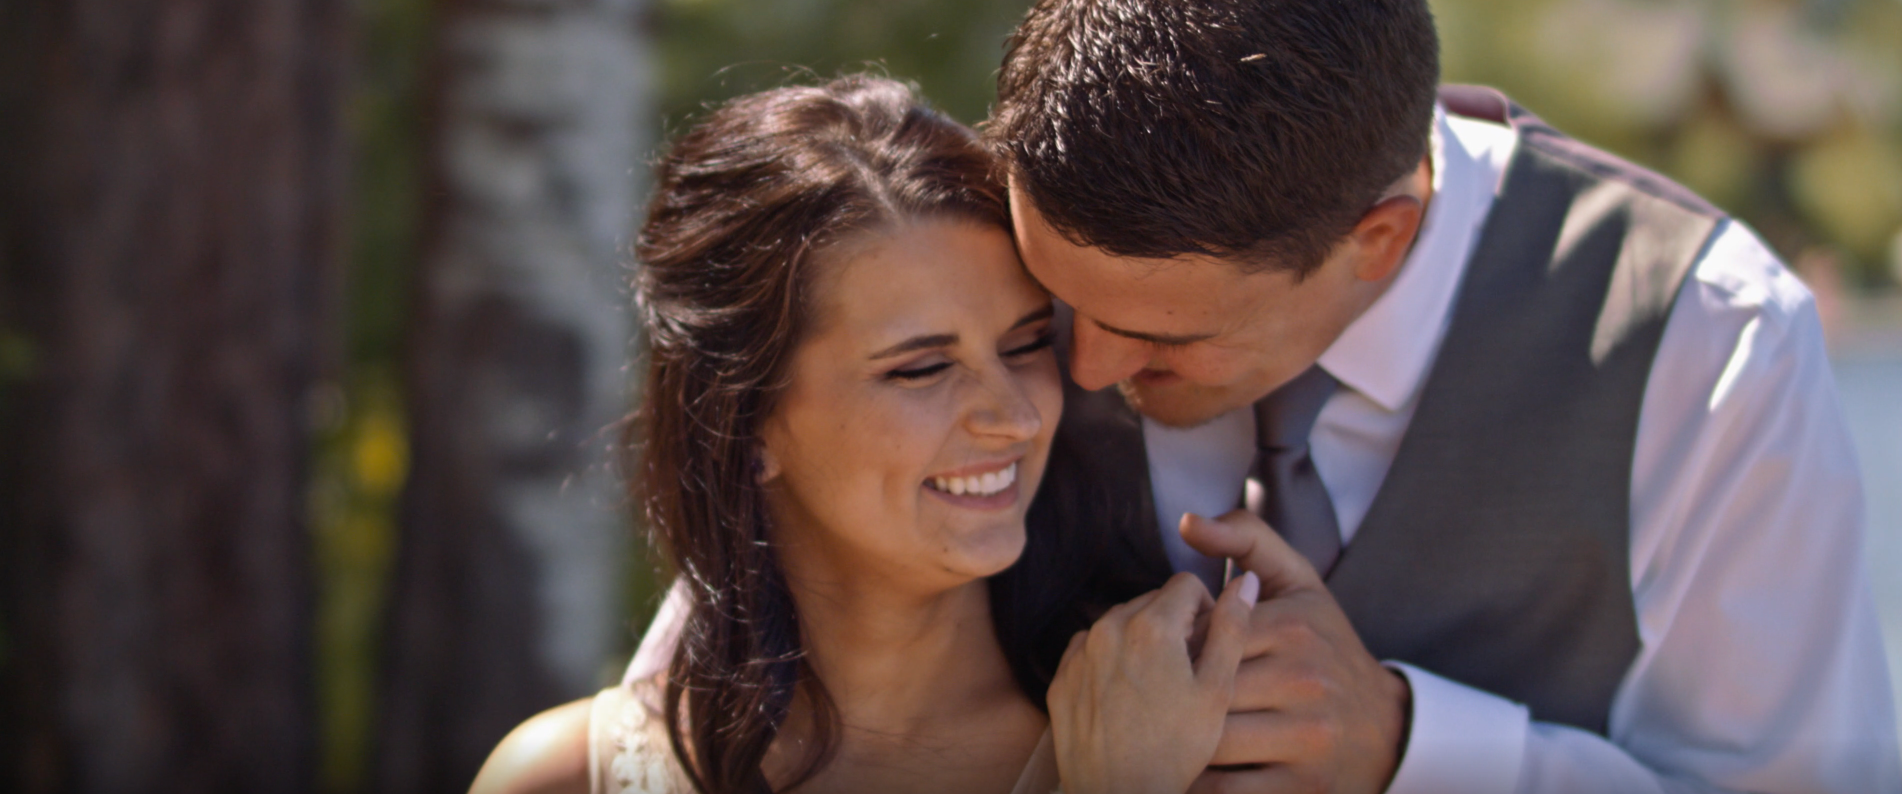 Stolen moments of our bride and groom during their first look, only hours before the ceremony!